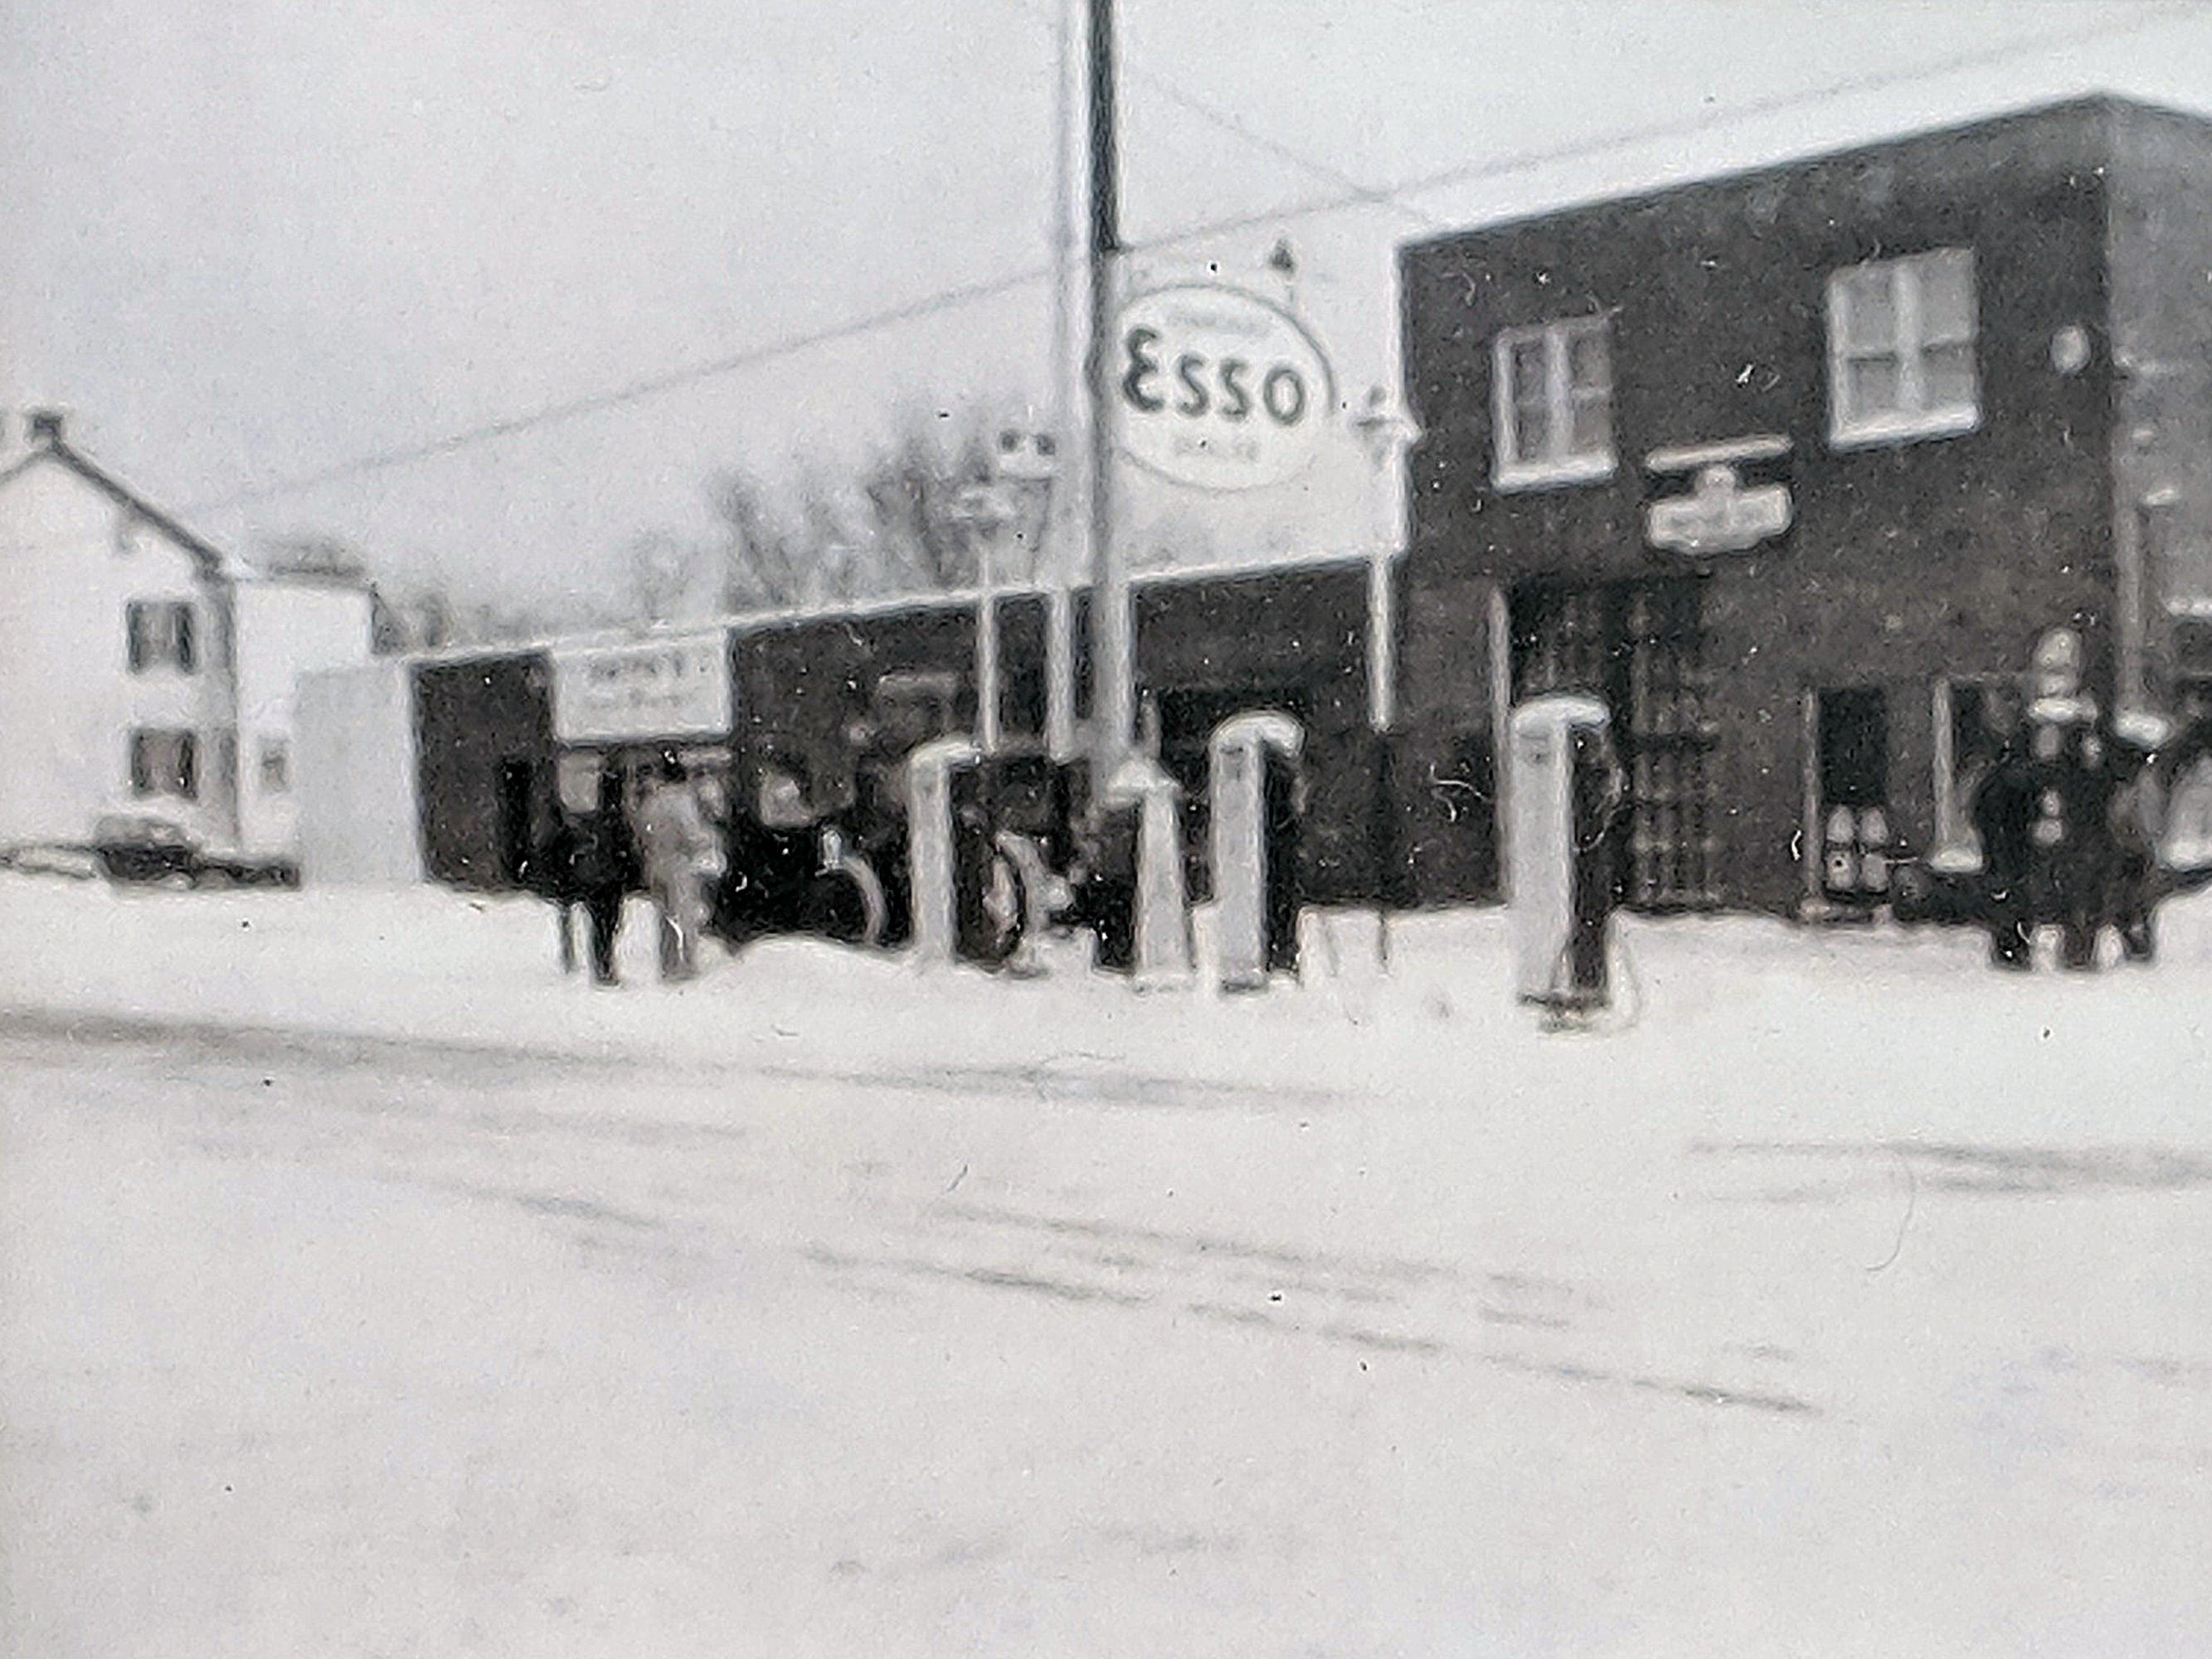 The Esso gas station in 1945 stood on the footprint of the current Rutter's across the street from the current Smith Village in Jacobus.